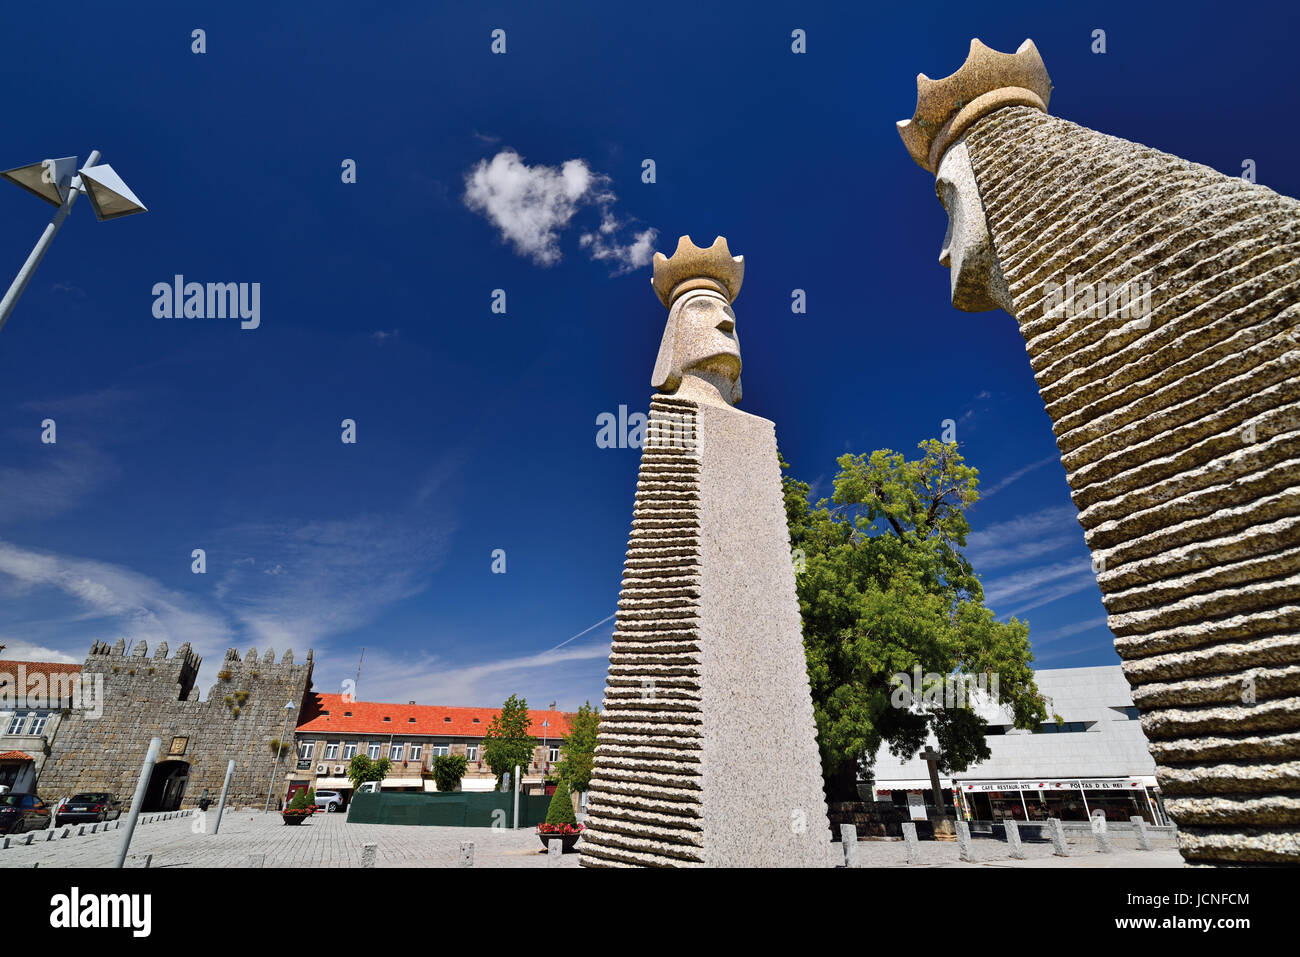 Stone carved monument of King and Queen at the entrance of Trancoso - Stock Image